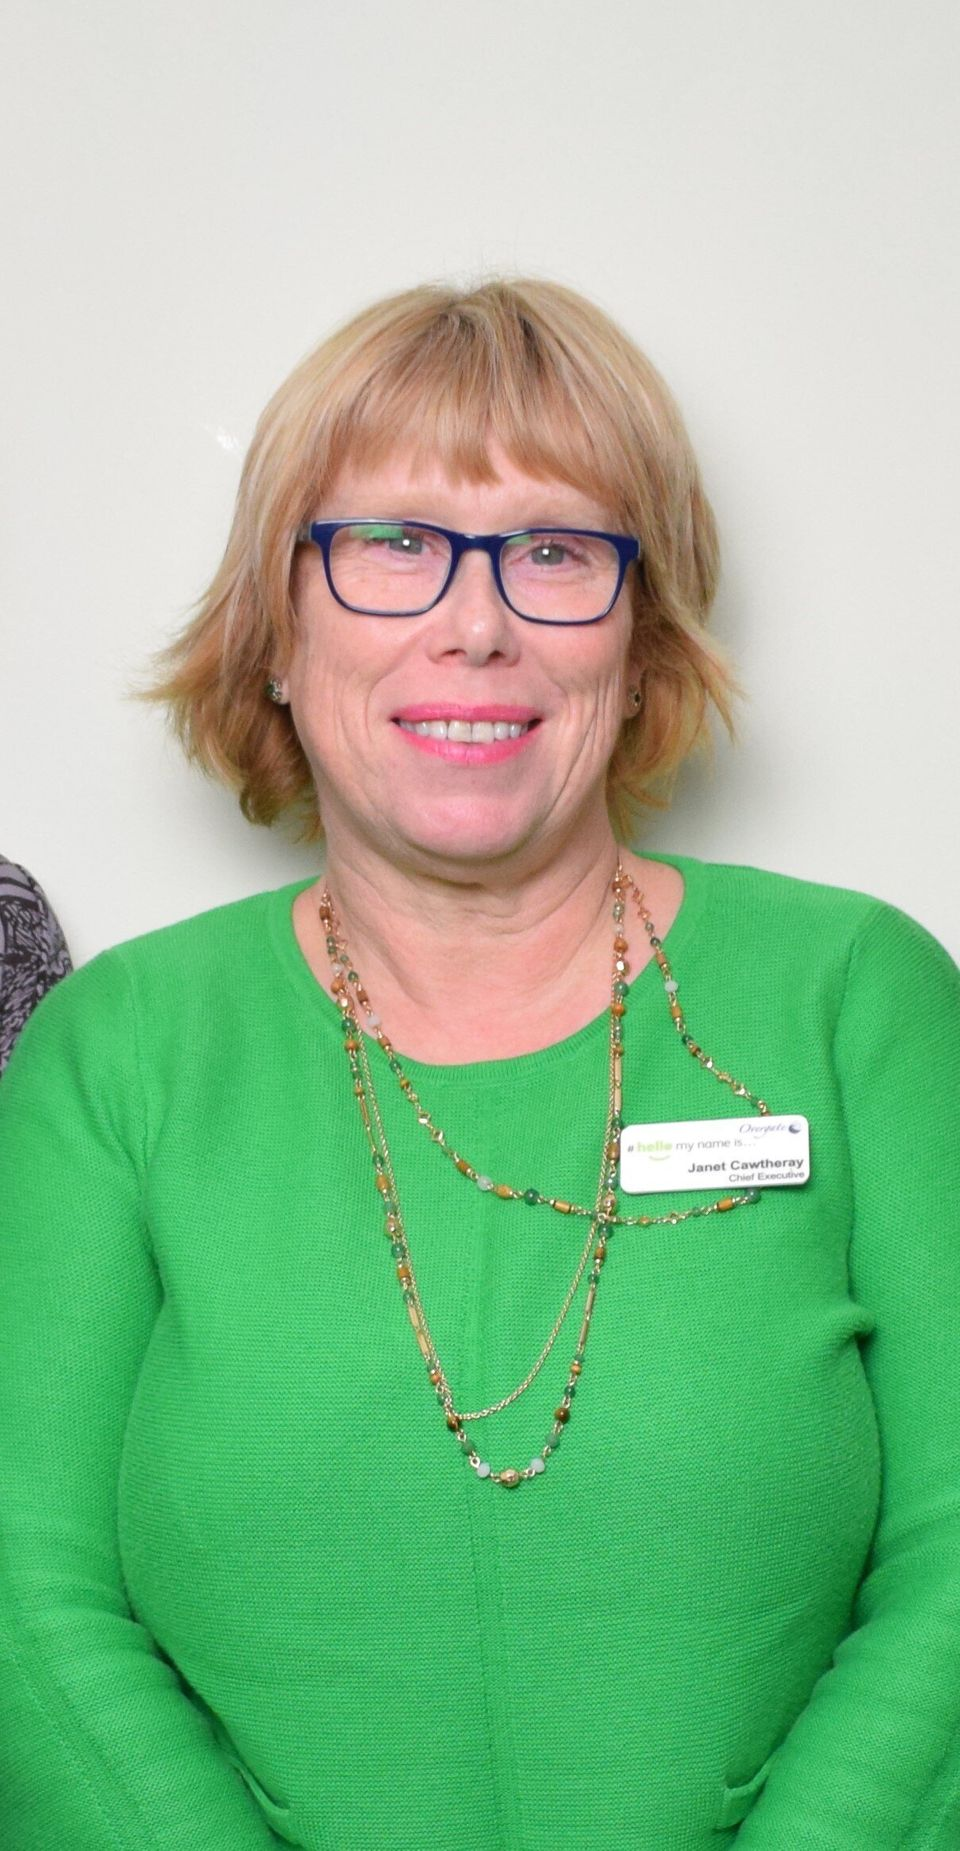 Janet Cawtheray is worried hospices have been forgotten about as a potential solution amid the current crisis.